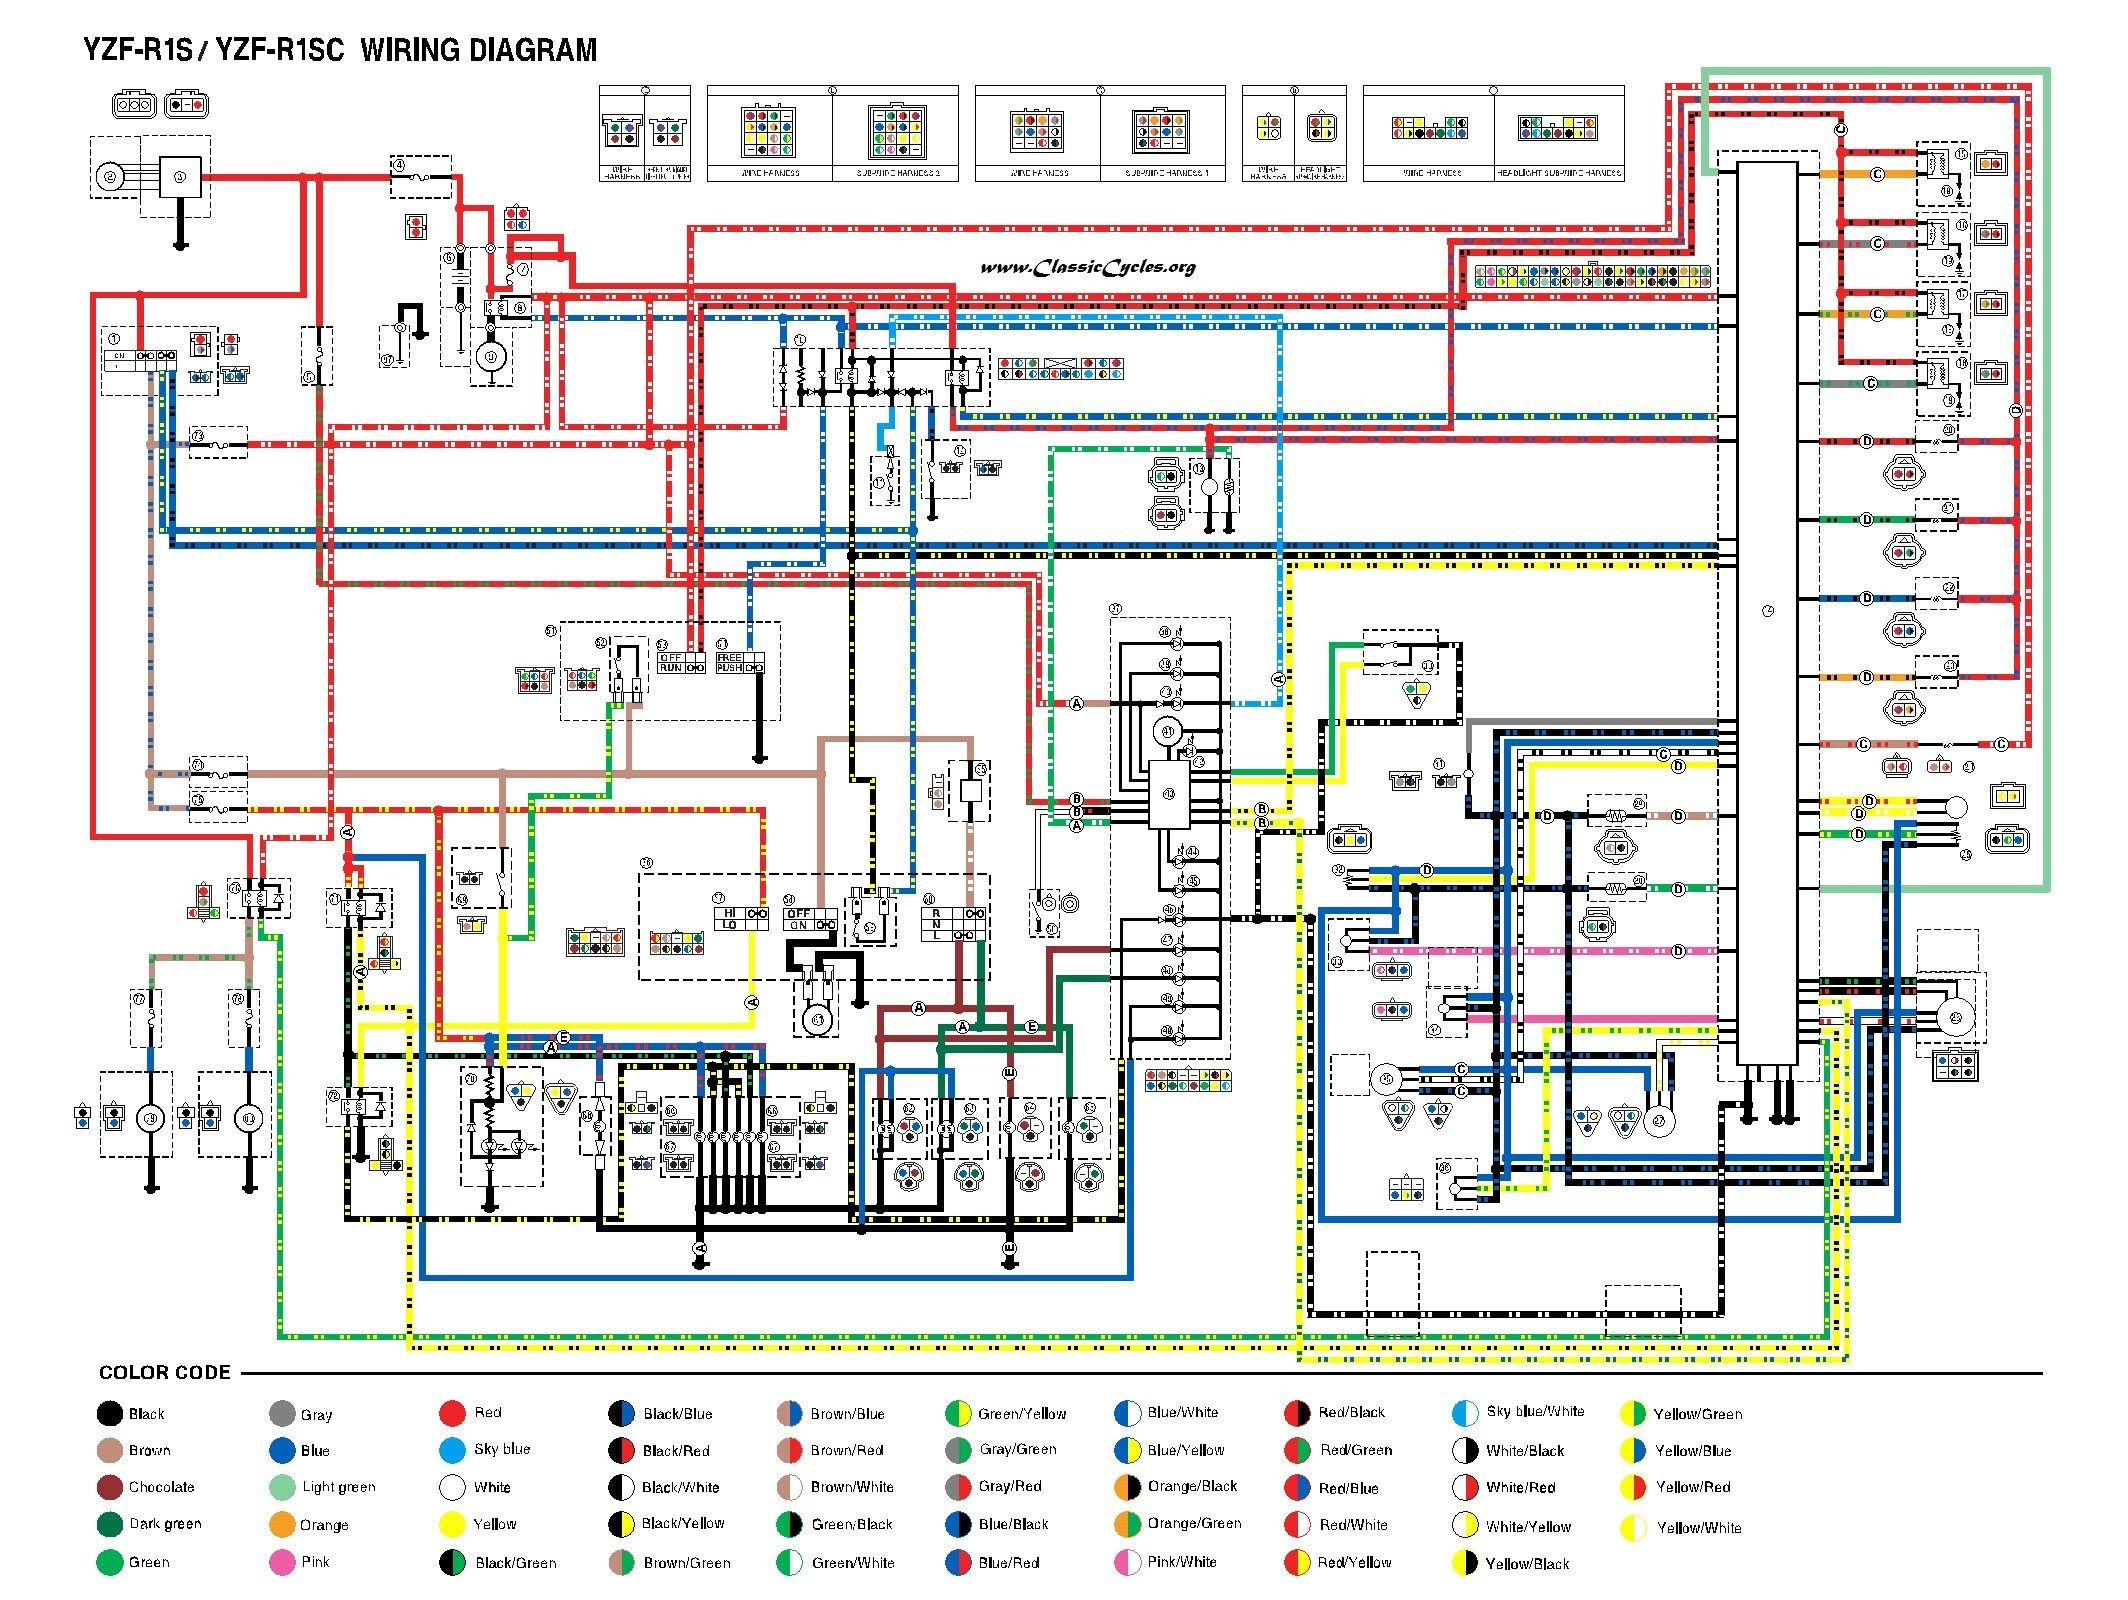 Terrific Wiring Diagram Yamaha Virago Carbonvote Mudit Blog Wiring 101 Akebretraxxcnl